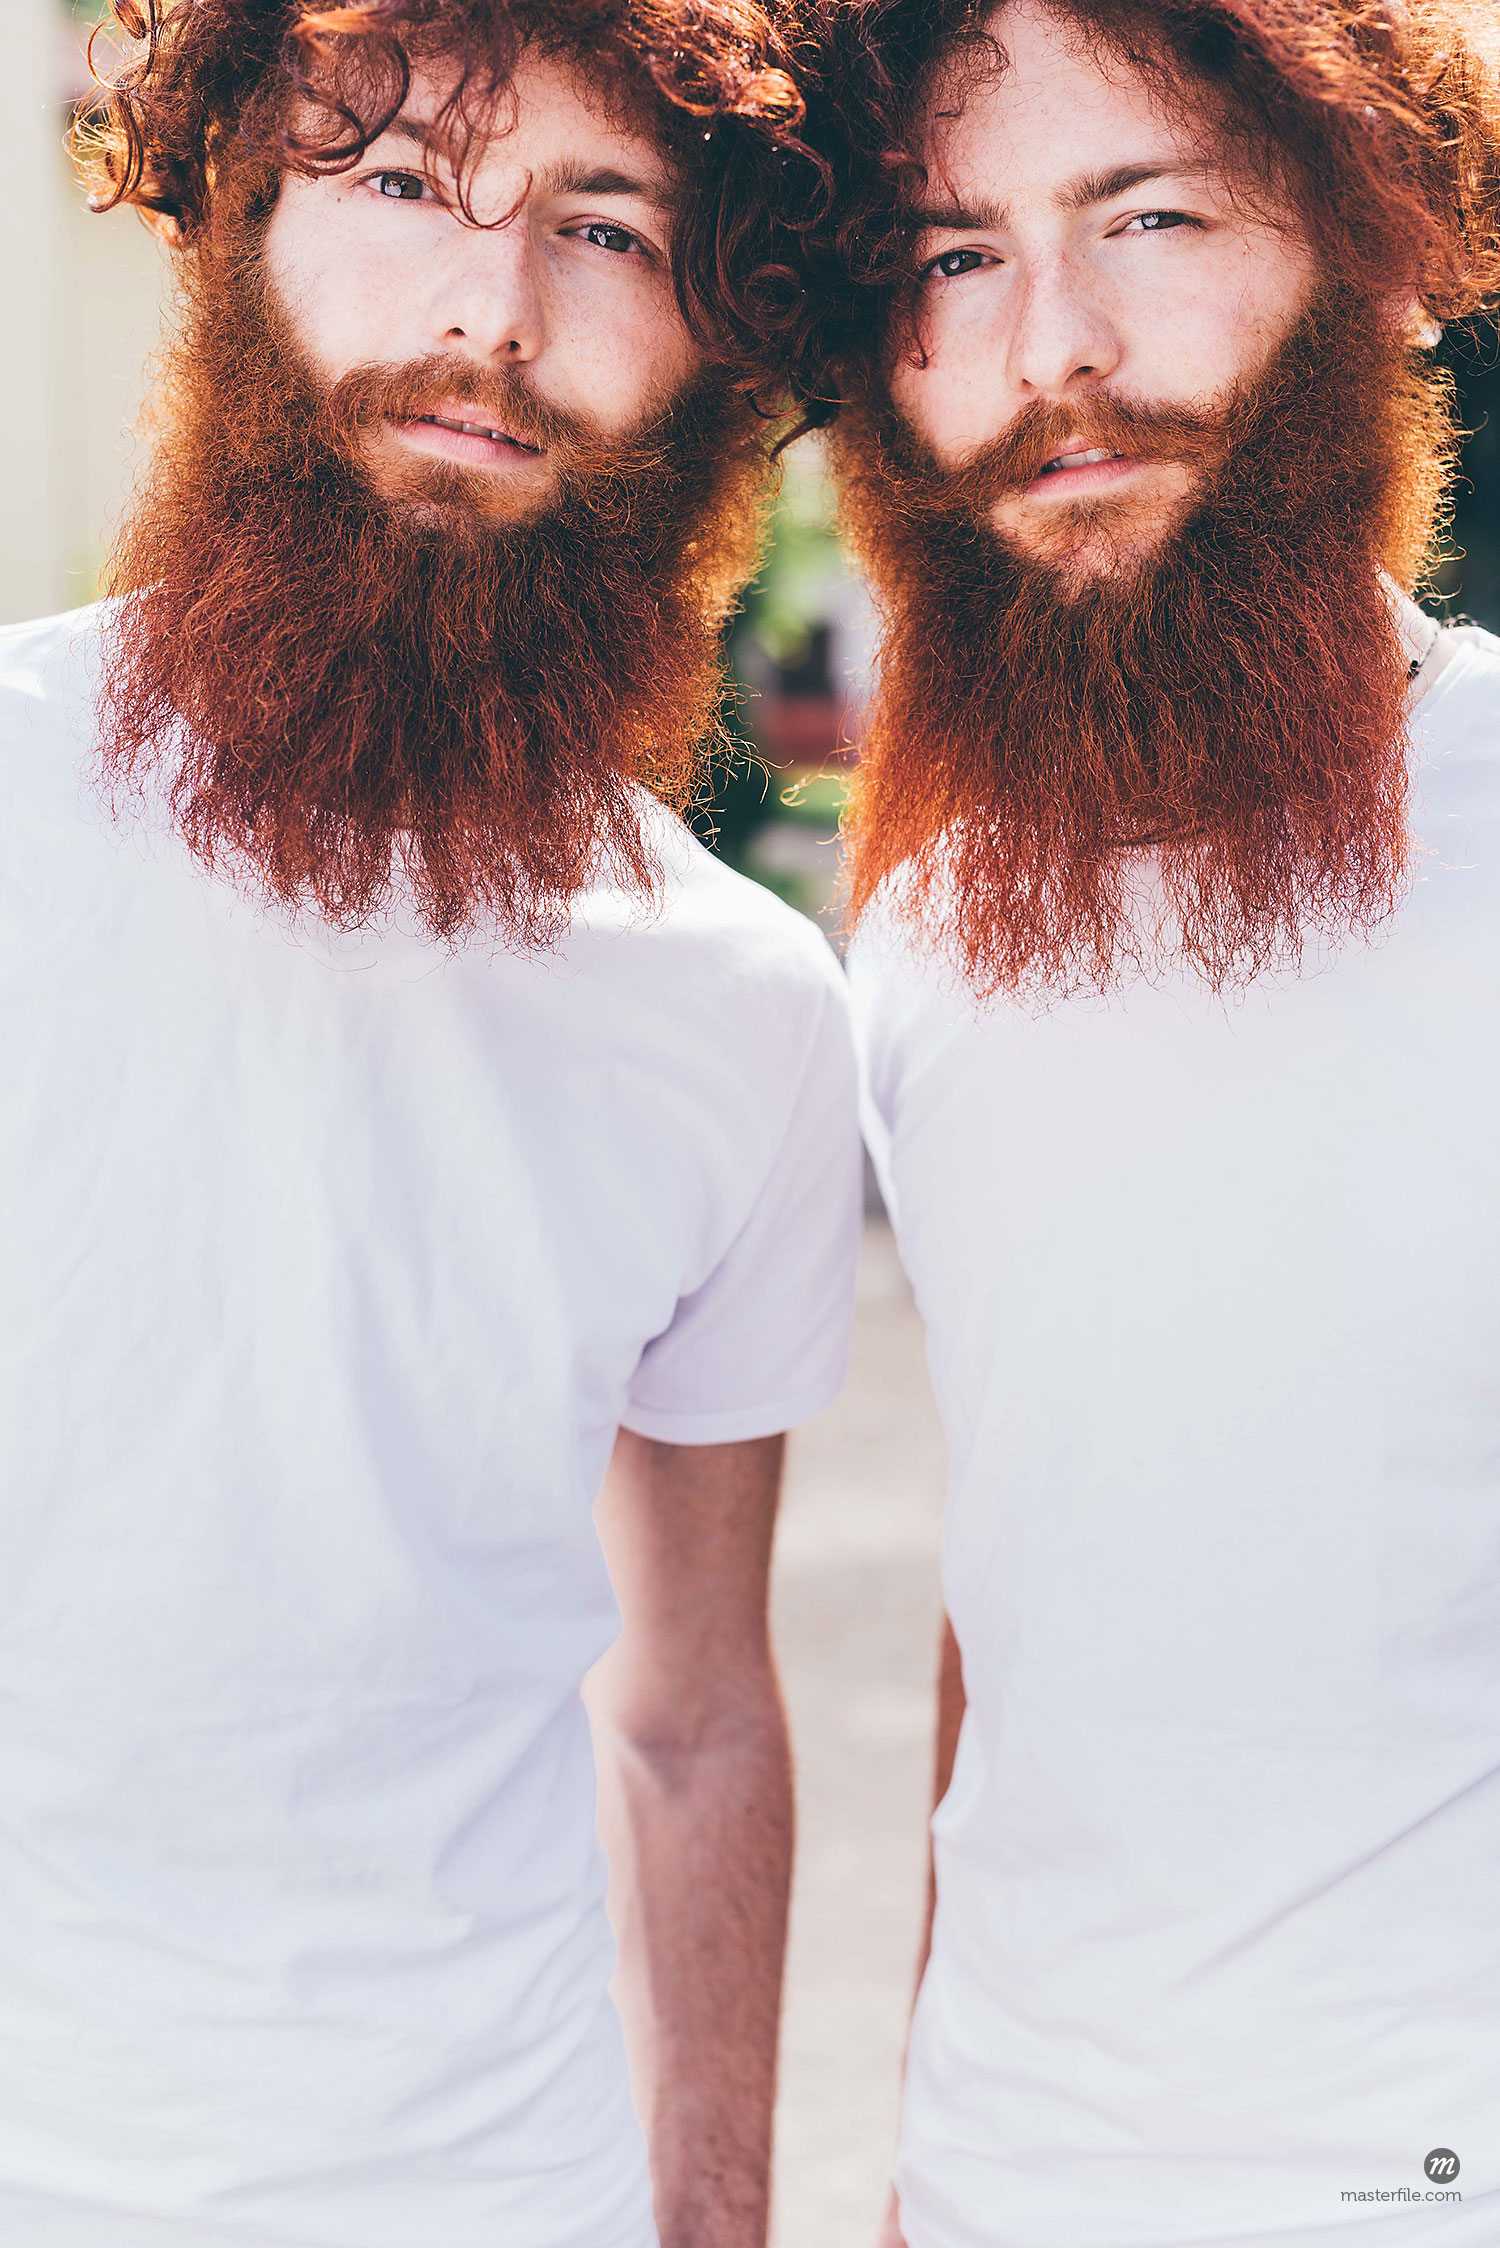 Portrait of young male hipster twins with red beards wearing white tshirts  © Masterfile